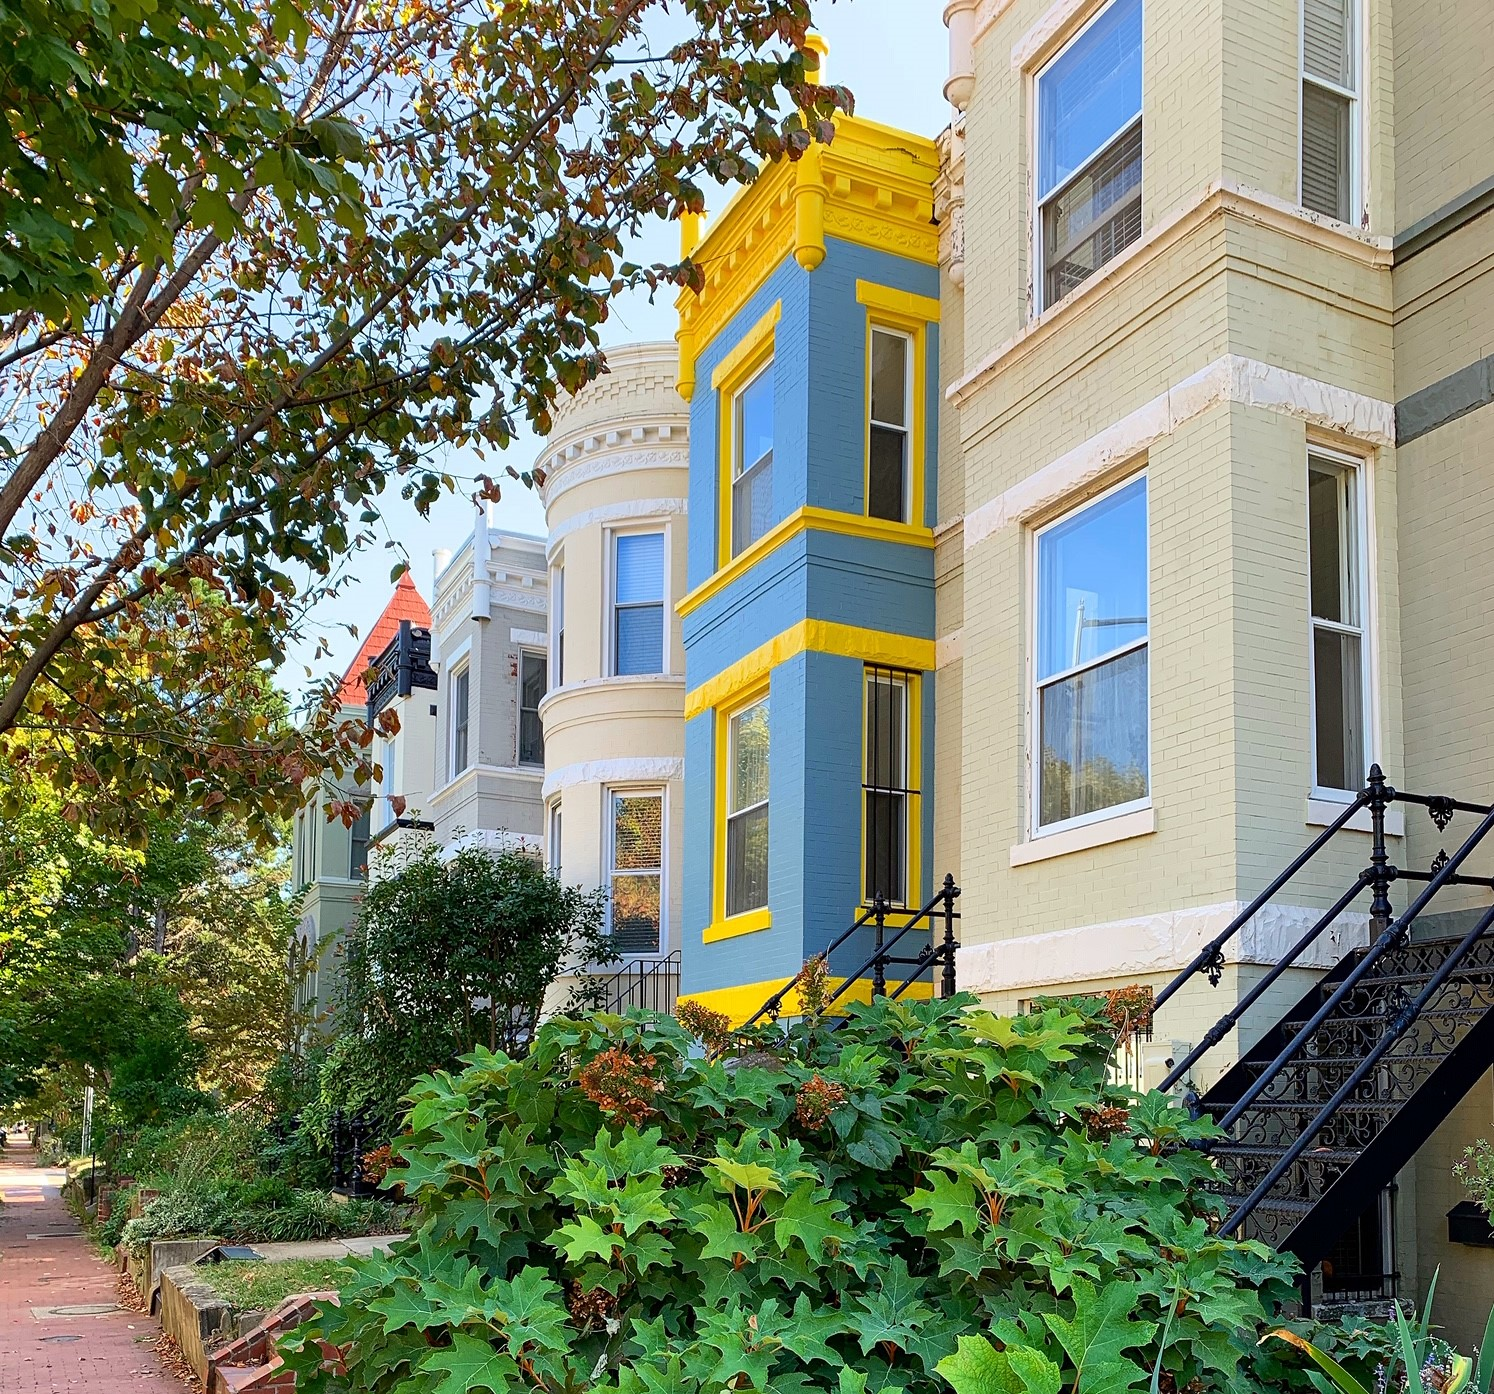 Washington, DC Historic Homes For Sale. Constitution Ave in Capitol Hill. Artyom Shmatko Luxury Real Estate Agent